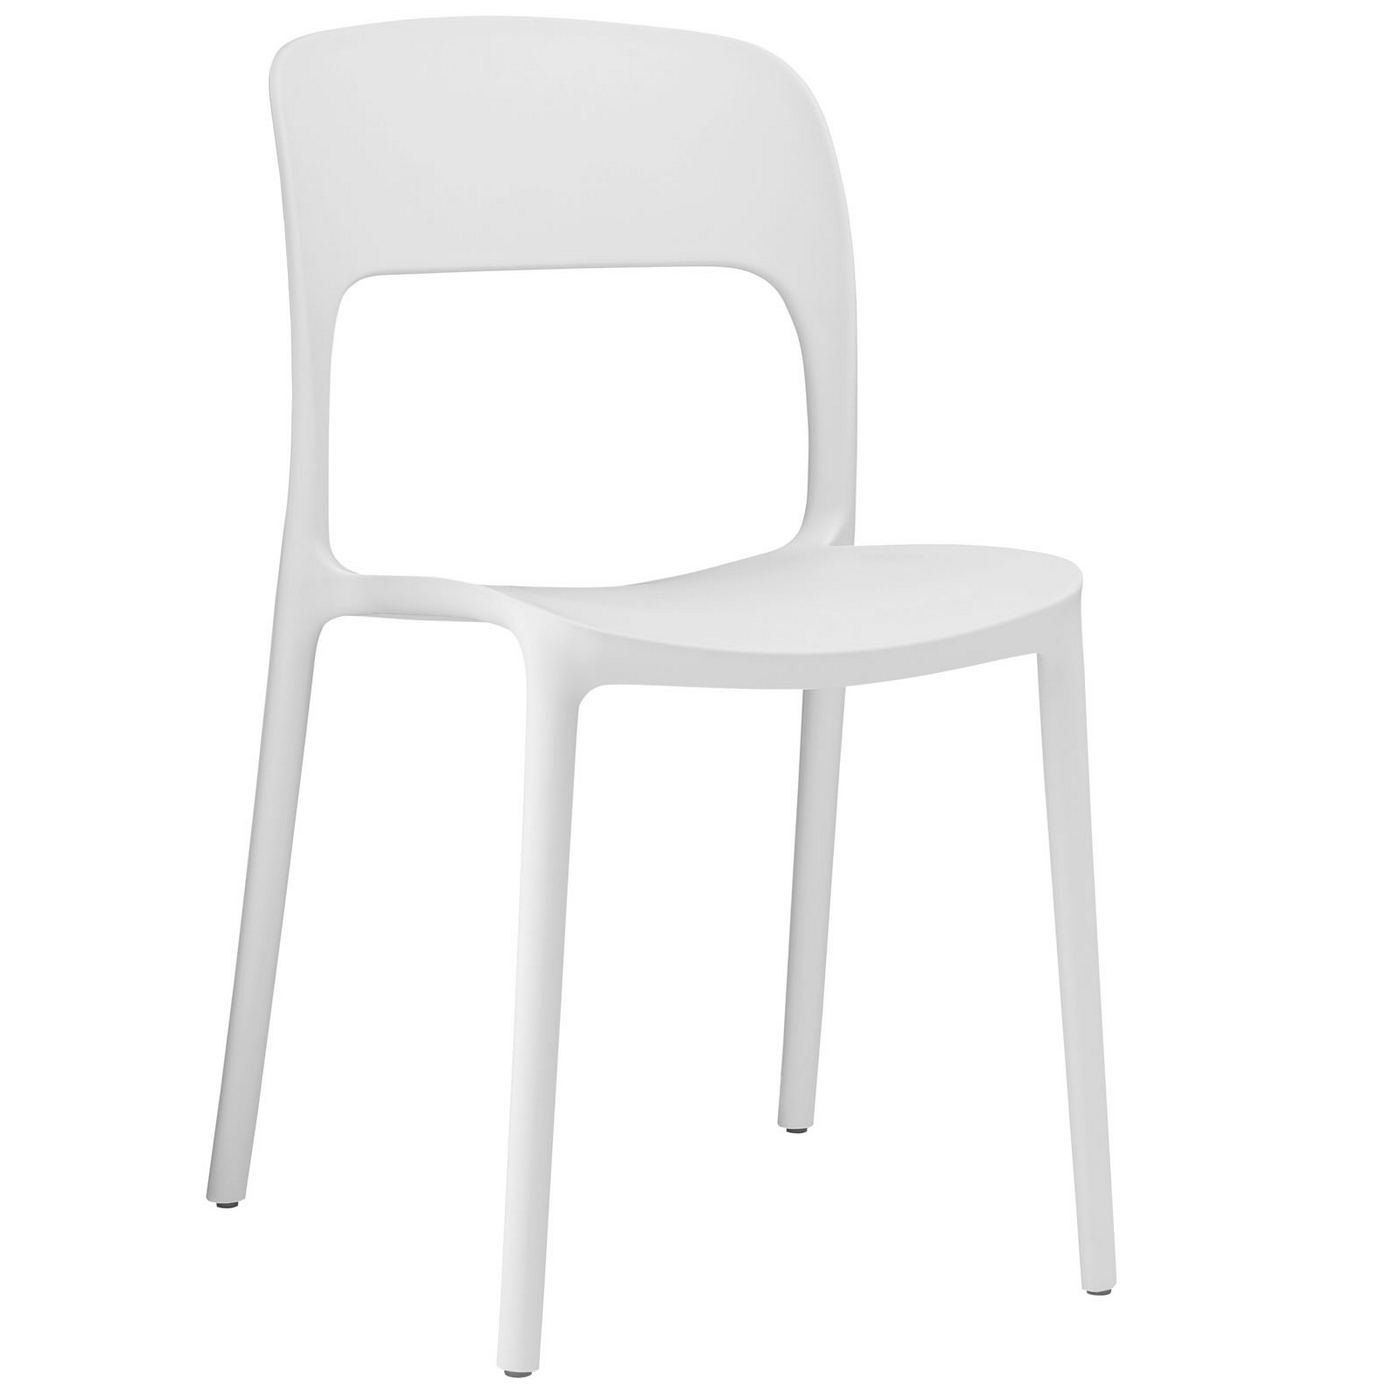 white stacking chairs plastic slipcovers for wingback with t cushion hop modern stackable dining side chair